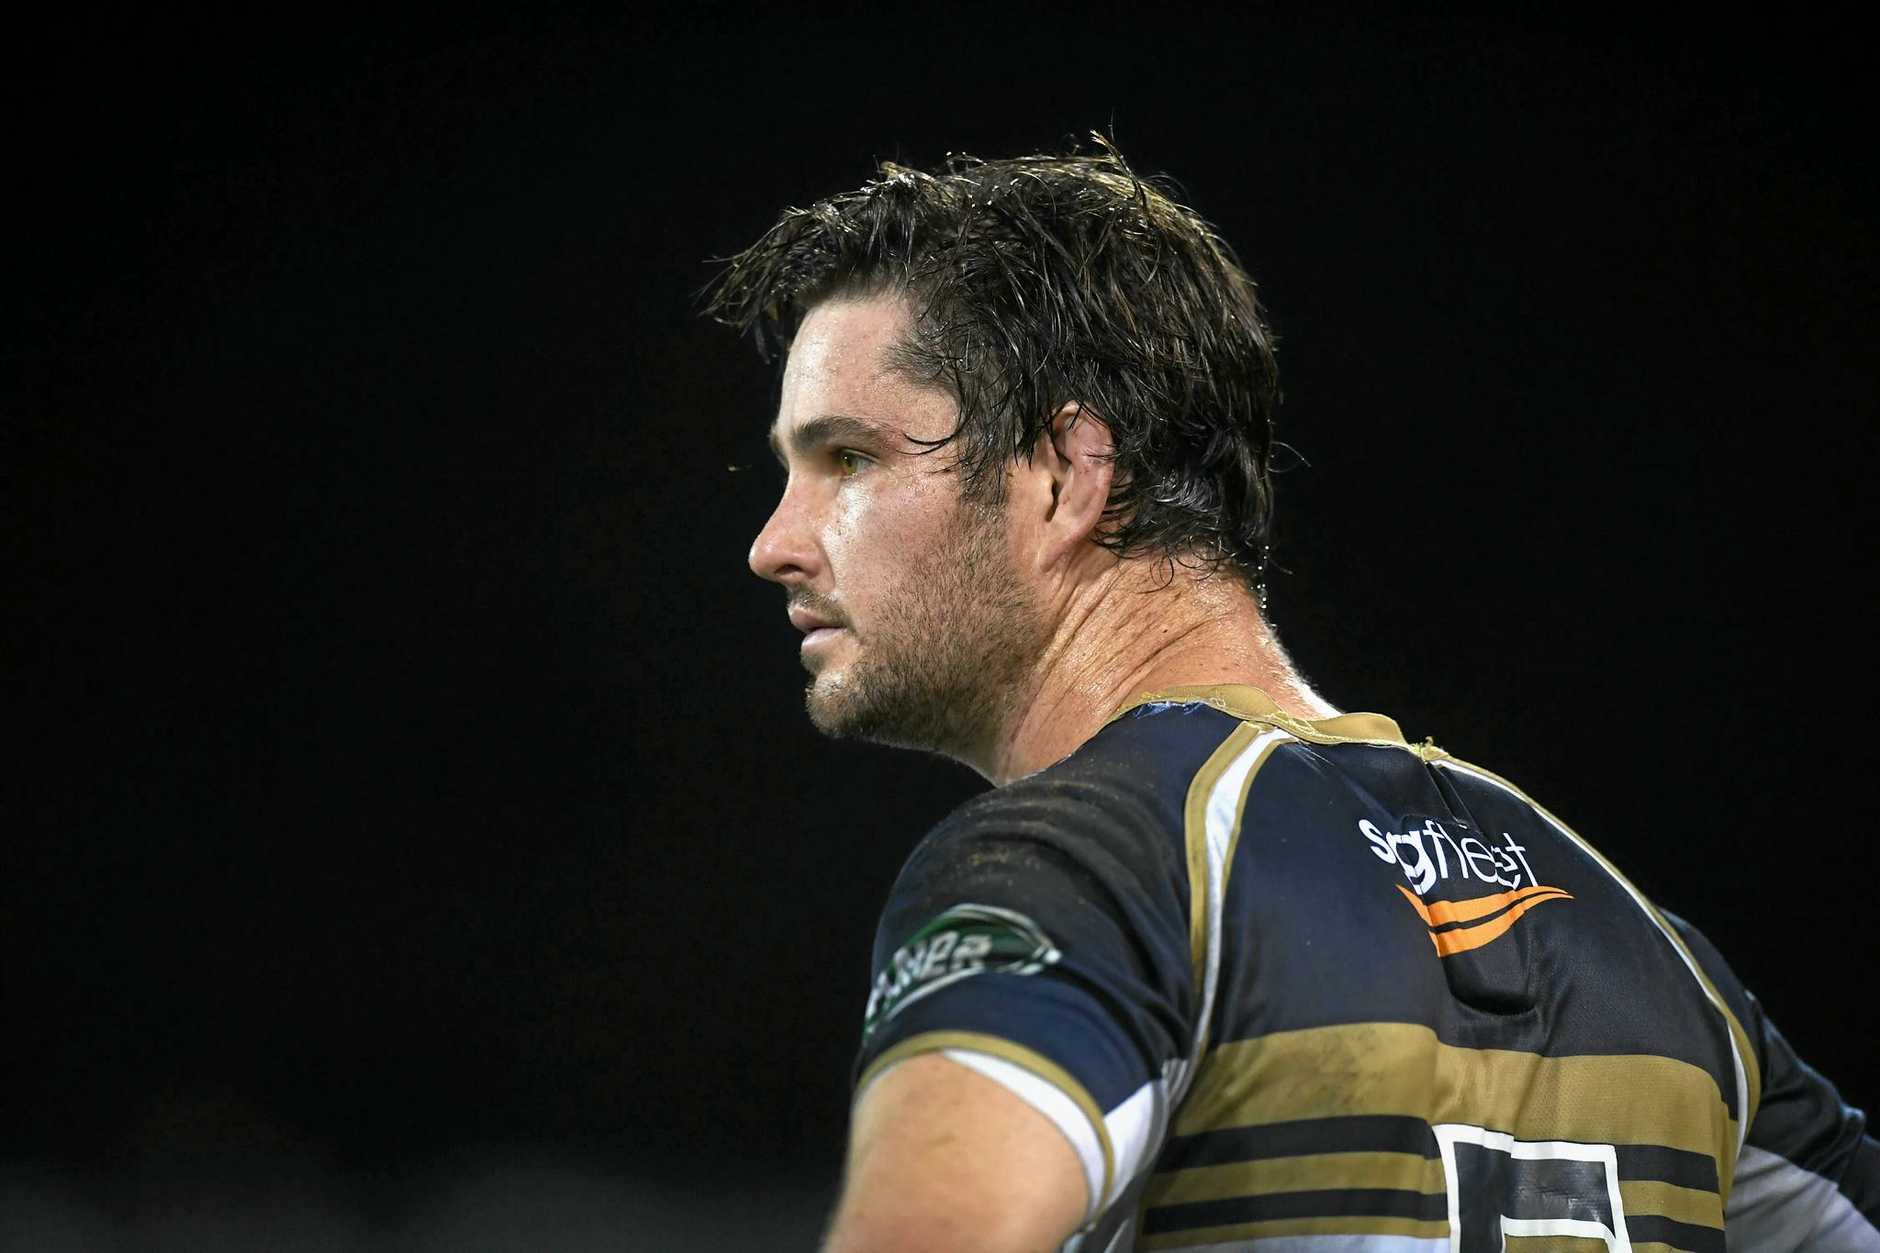 Brumbies skipper Sam Carter believes his side has the ability to pull off a big upset this Friday against the Hurricanes.